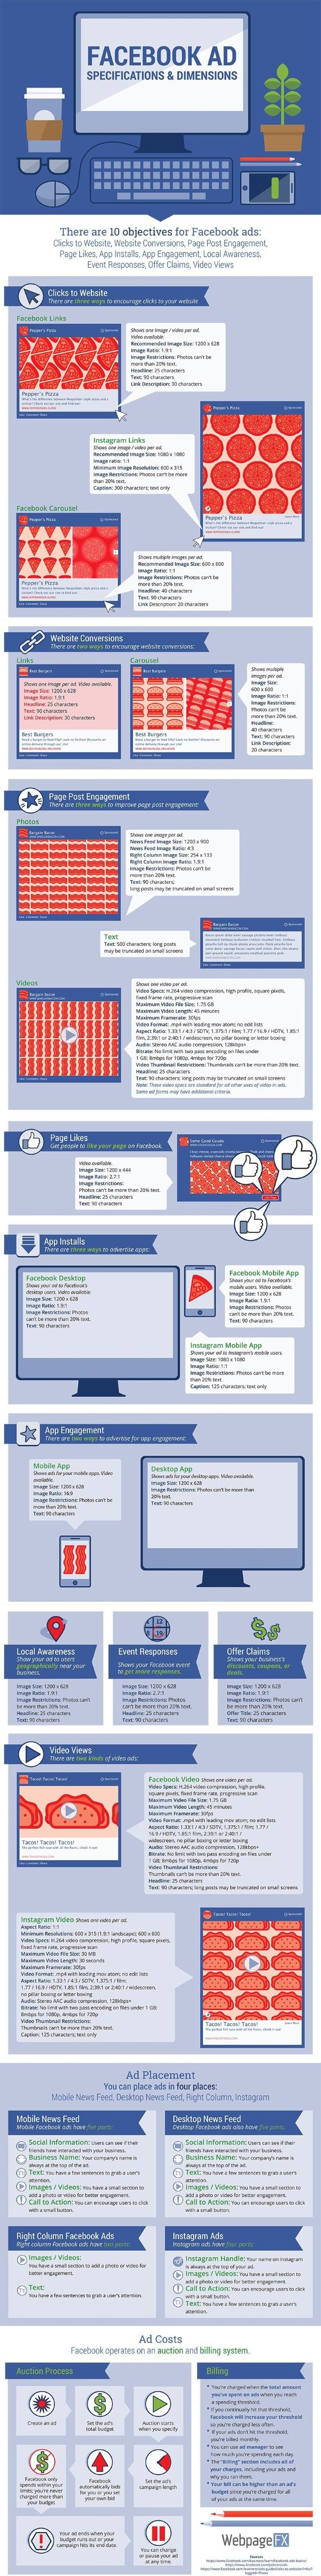 The Anatomy of an Optimized Facebook Ad [Infographic]